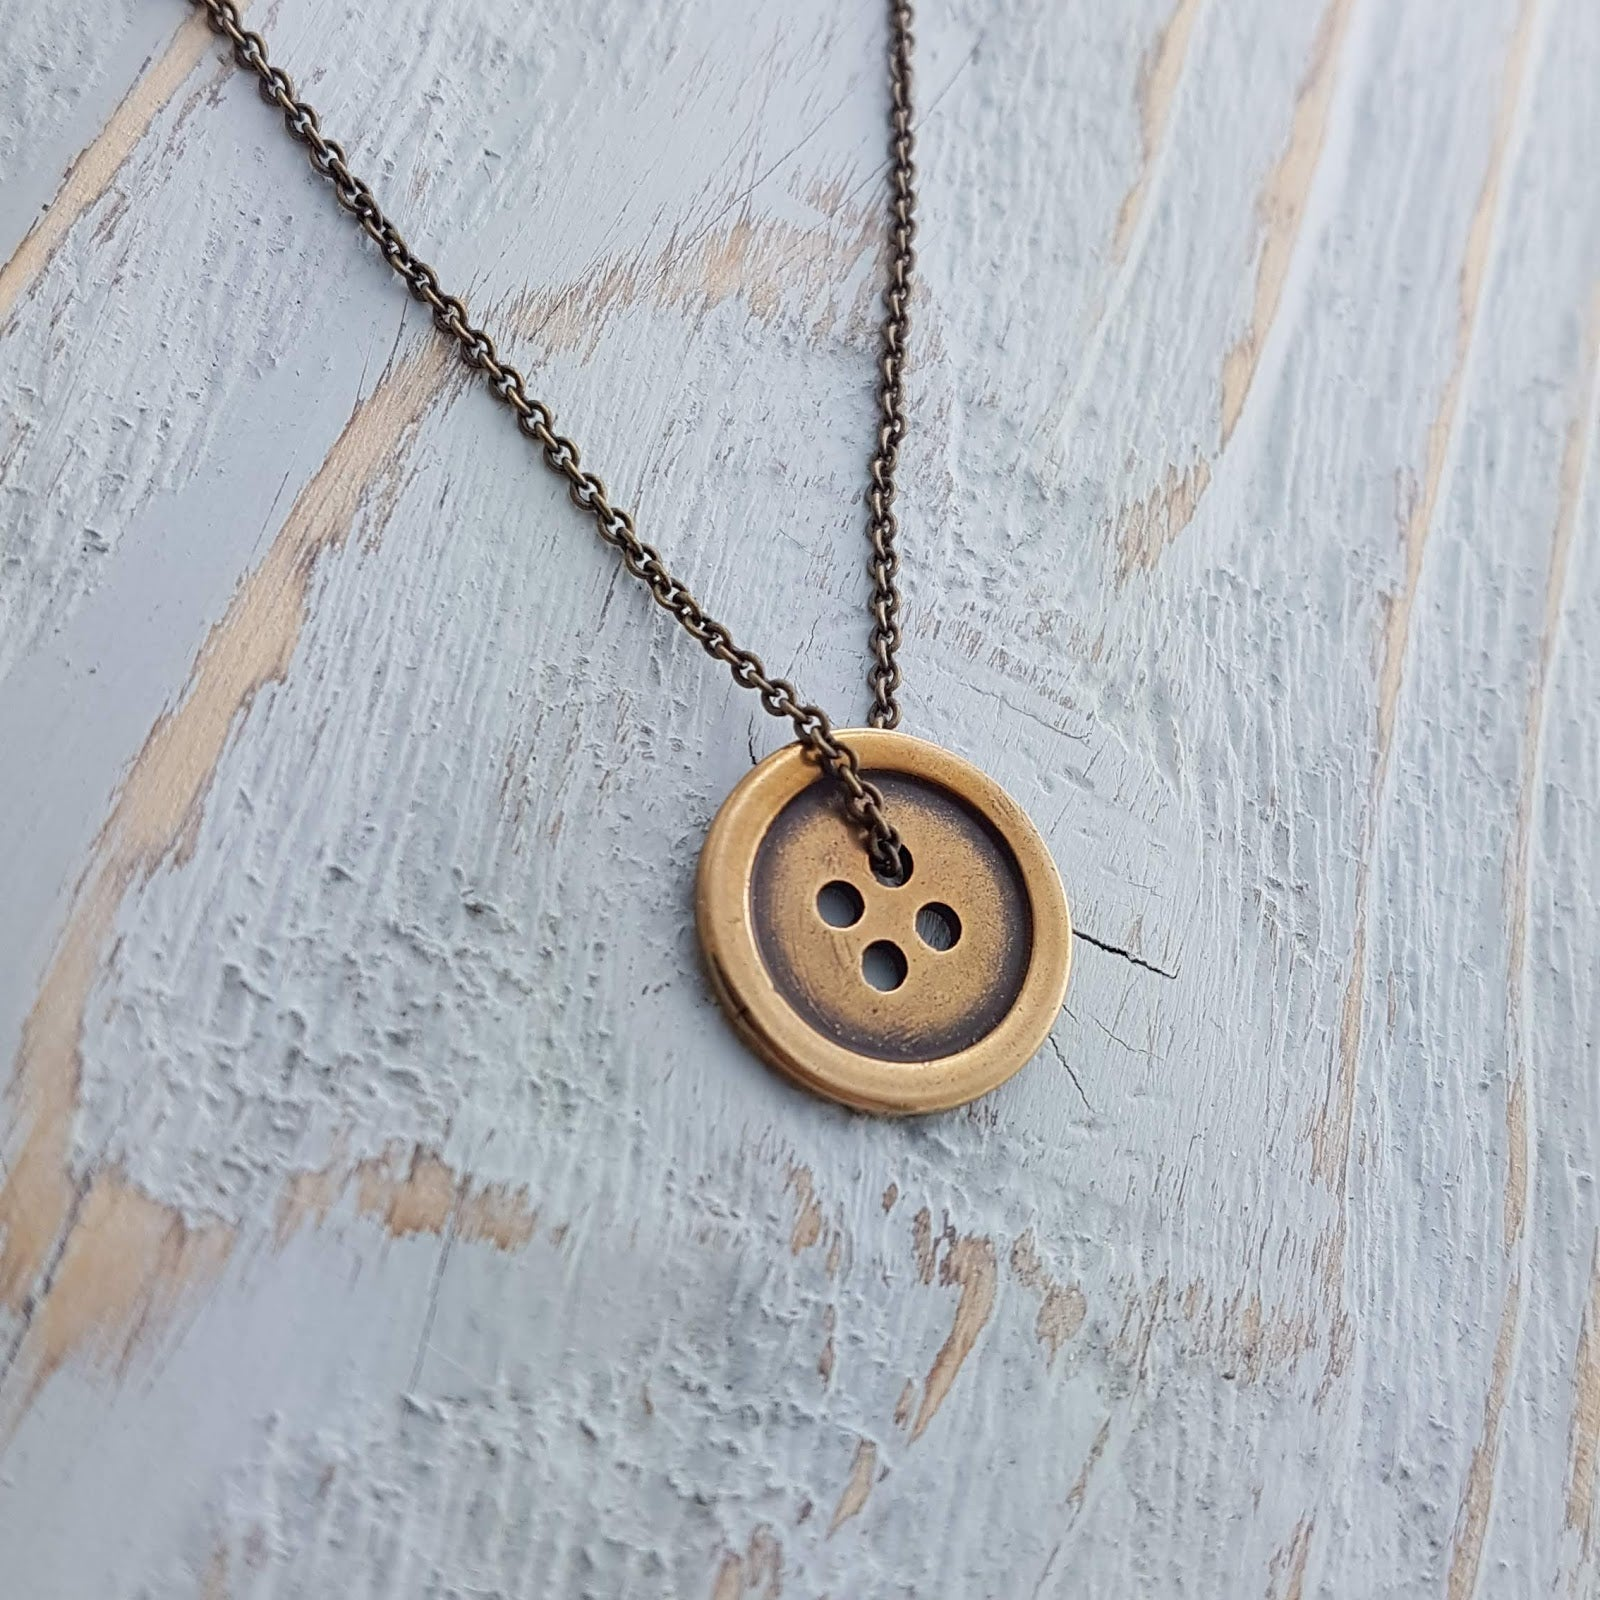 Button Necklace - Gwen Delicious Jewelry Designs